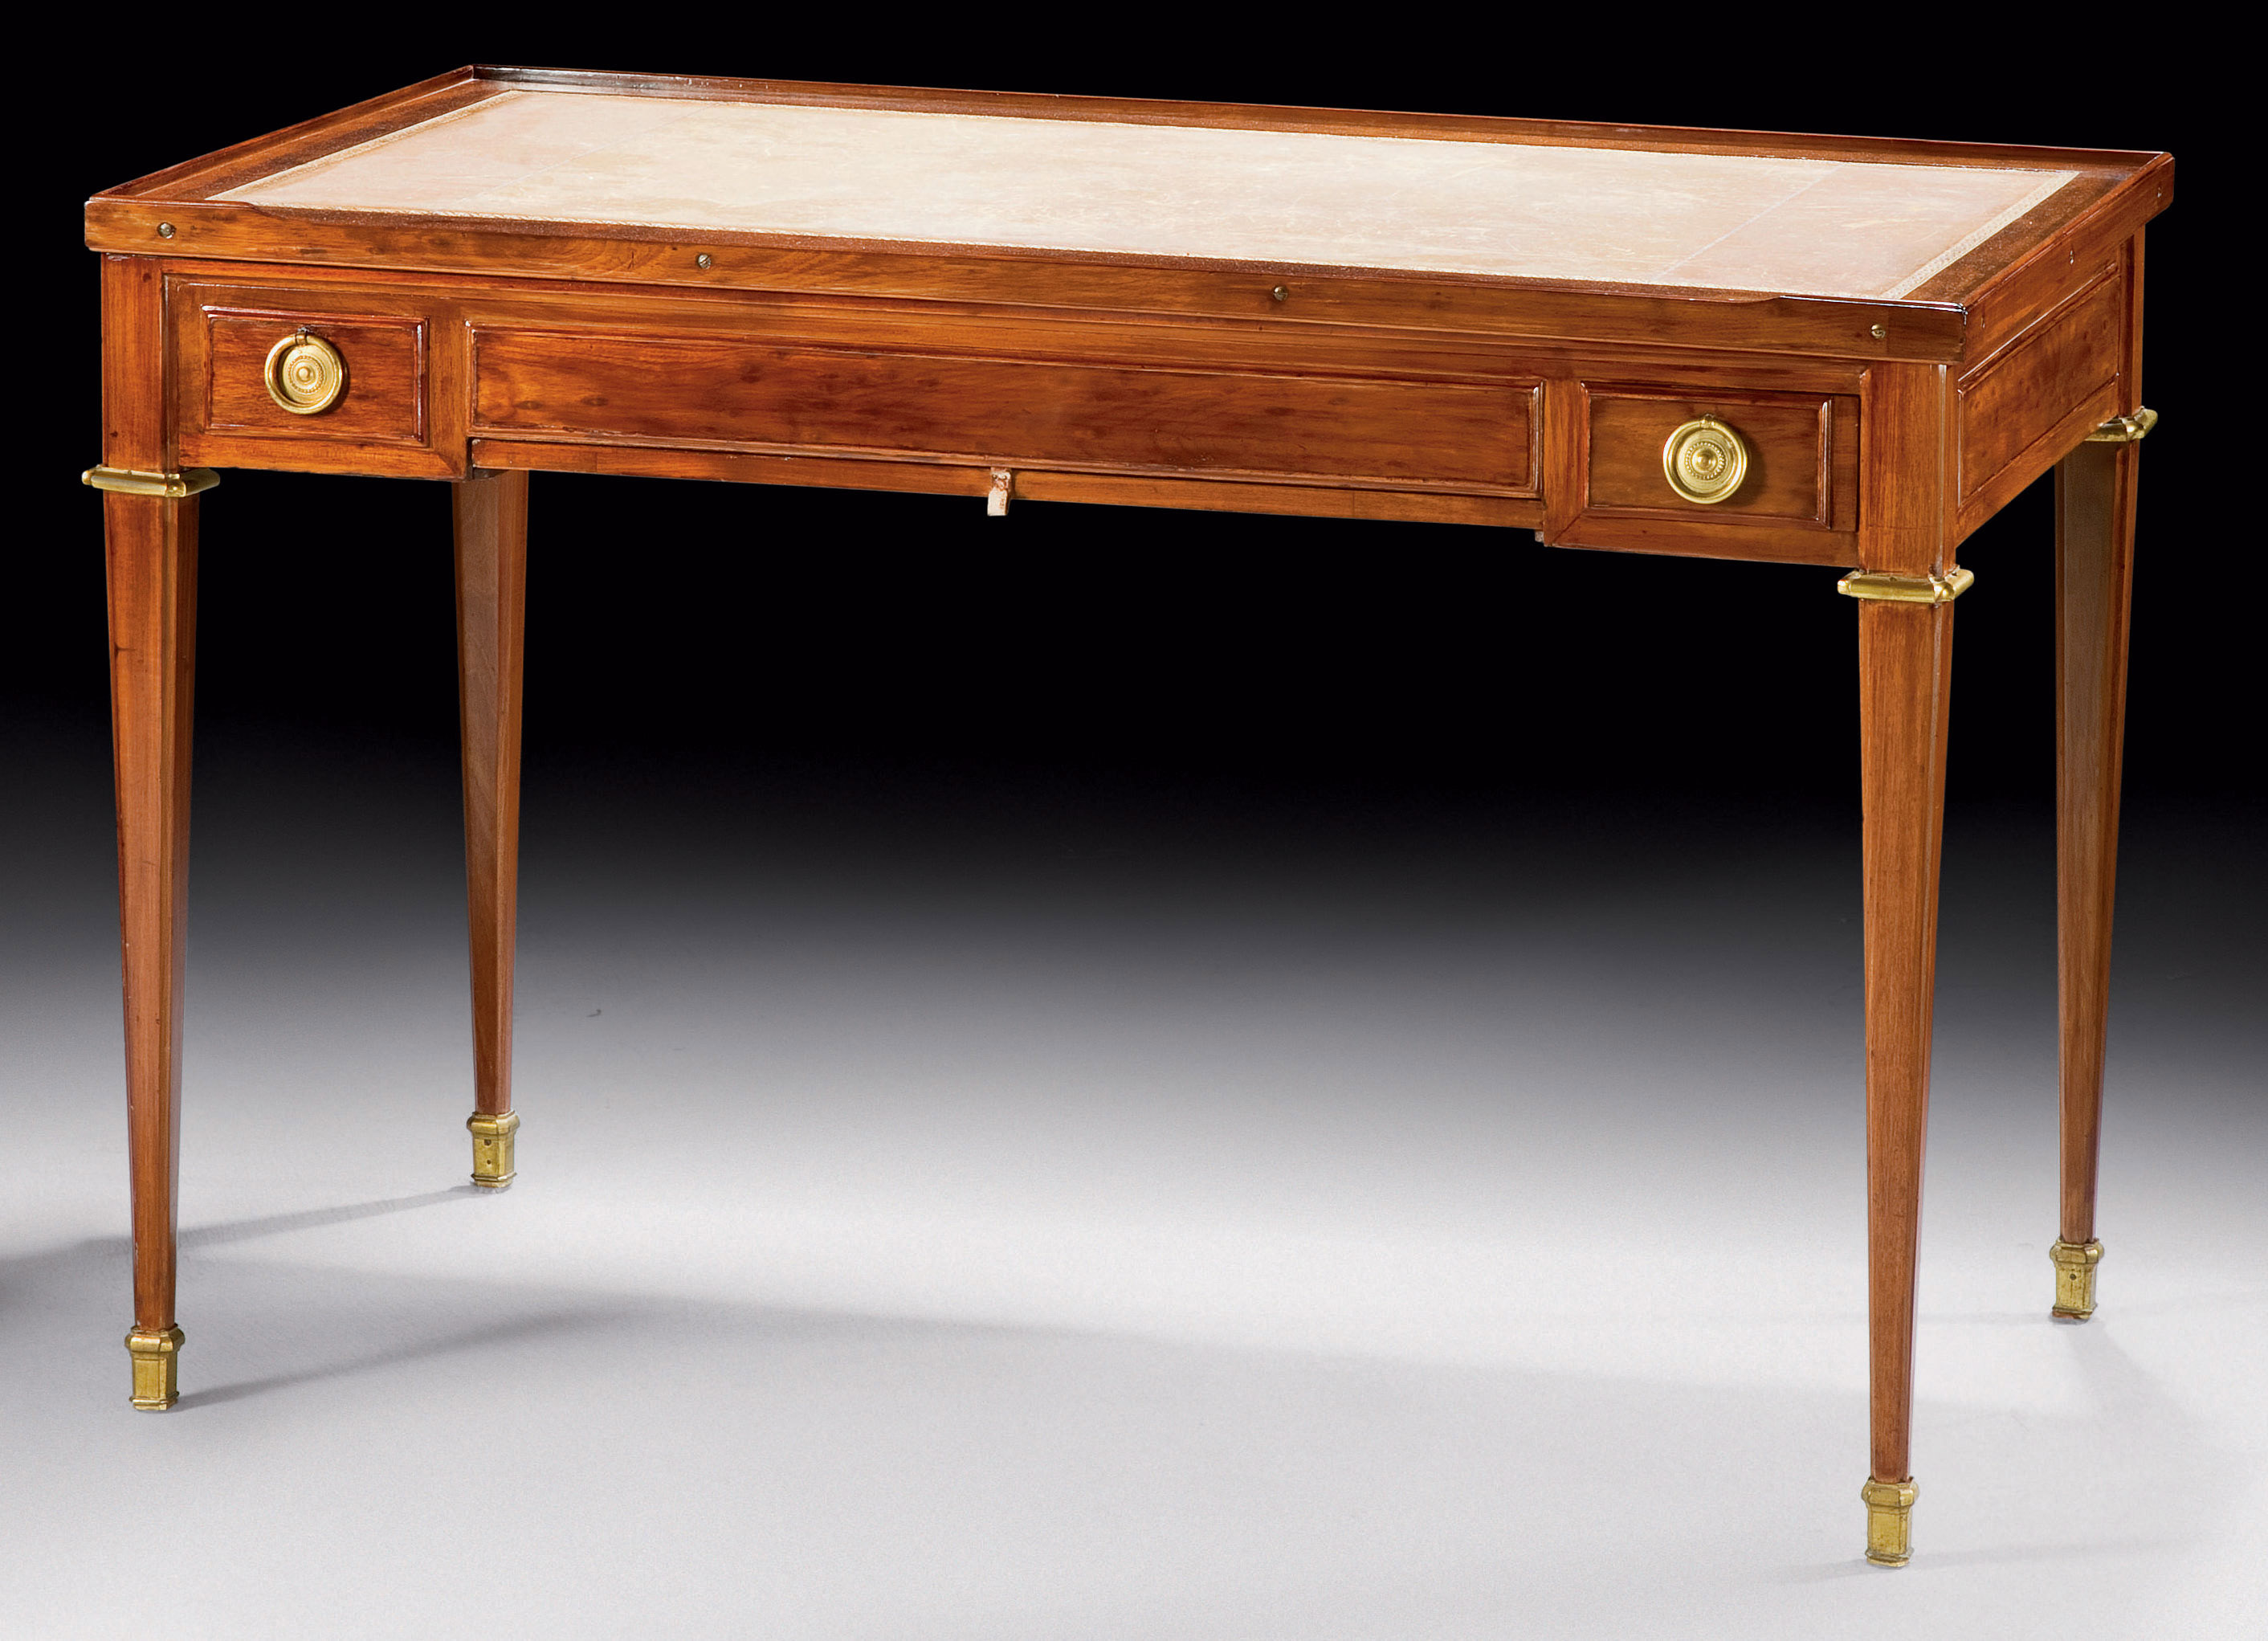 TABLE TRIC-TRAC D'EPOQUE LOUIS XVI